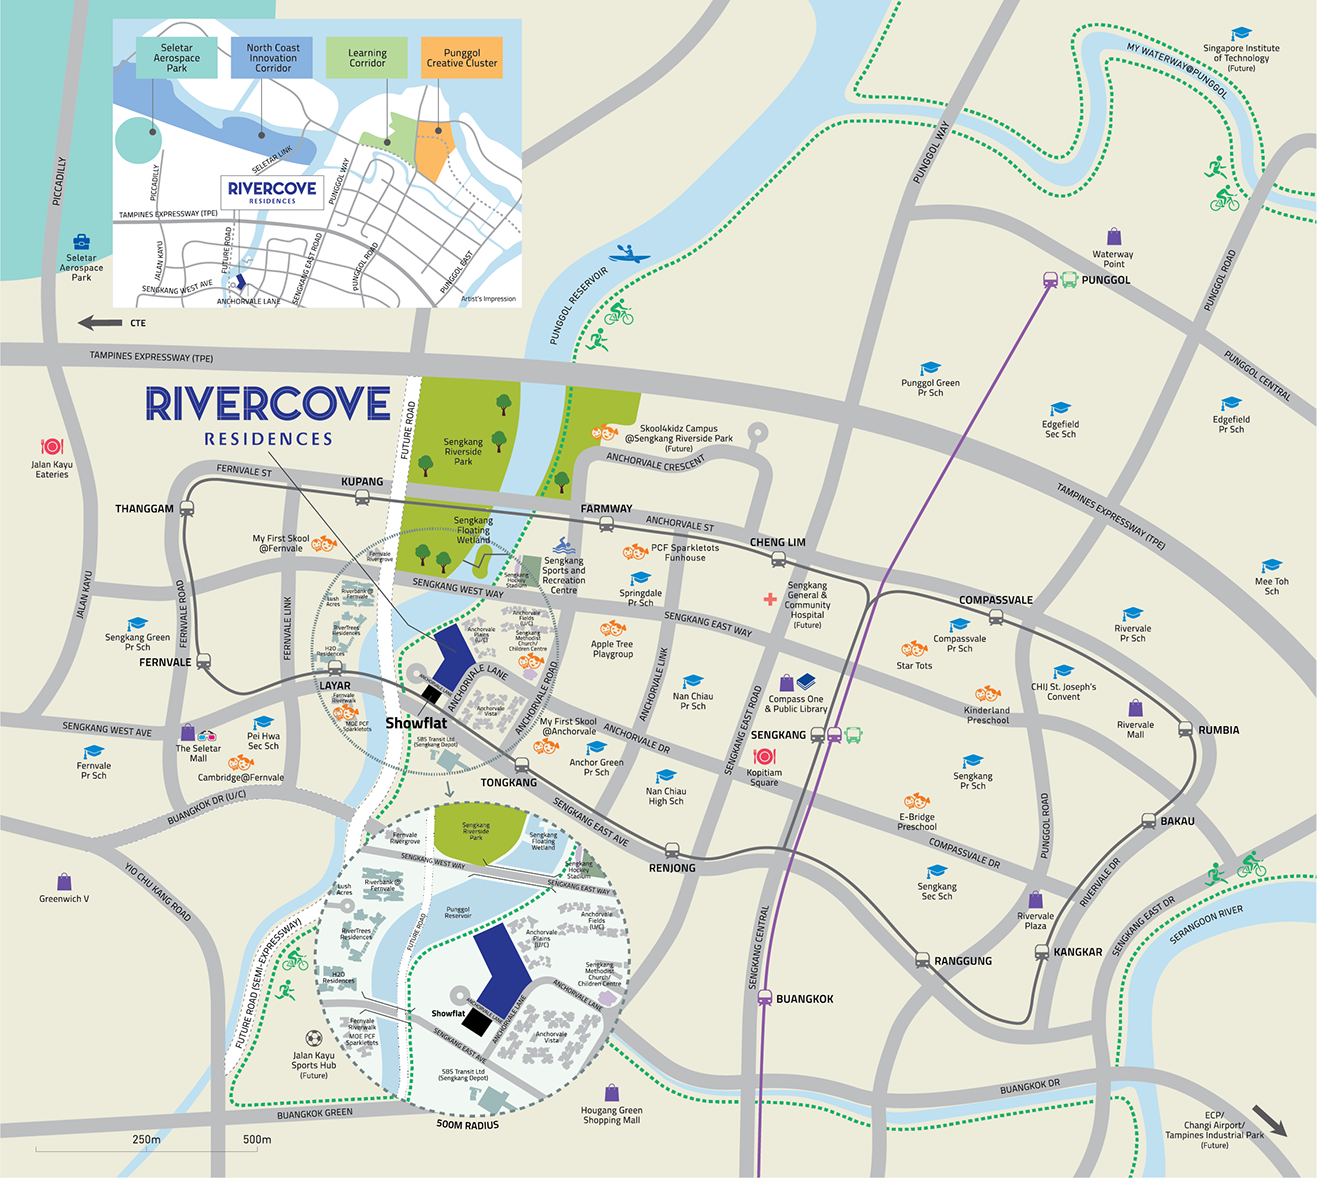 Rivercove Residences Land Parcel and Nearby Amenities